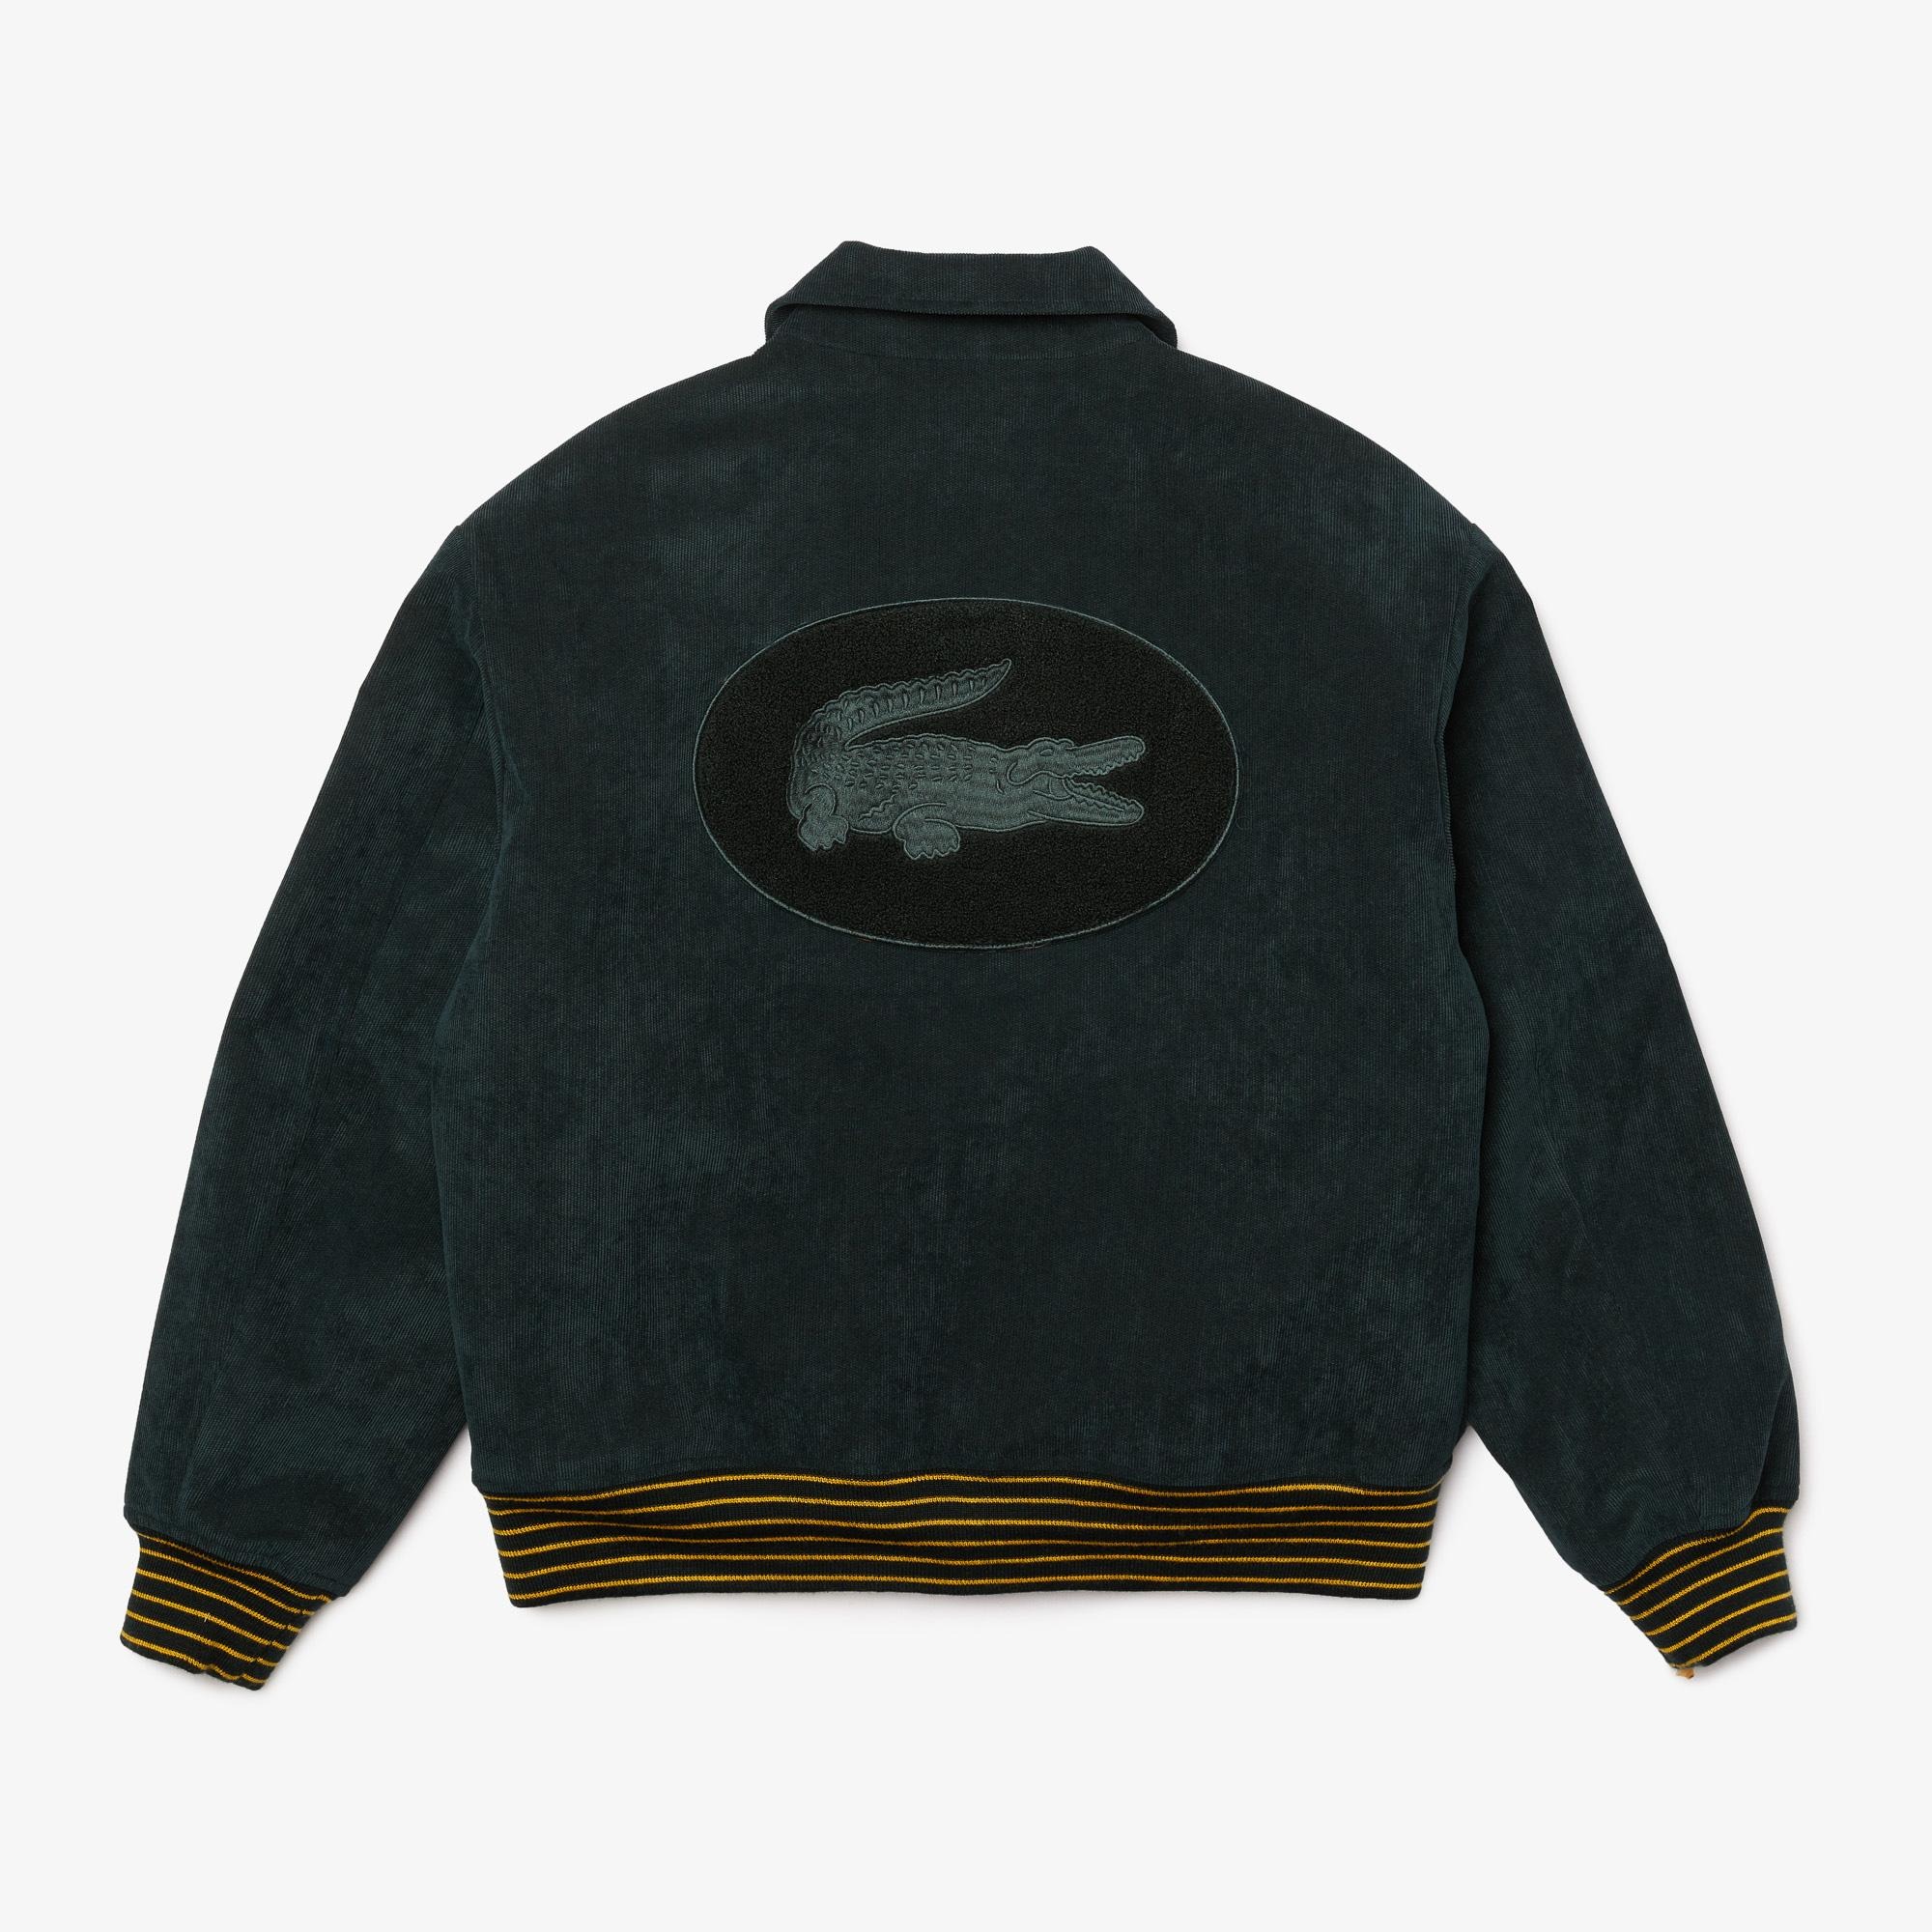 Lacoste L!VE Unisex Golden Embroidery Ribbed Velvet Teddy Jacket